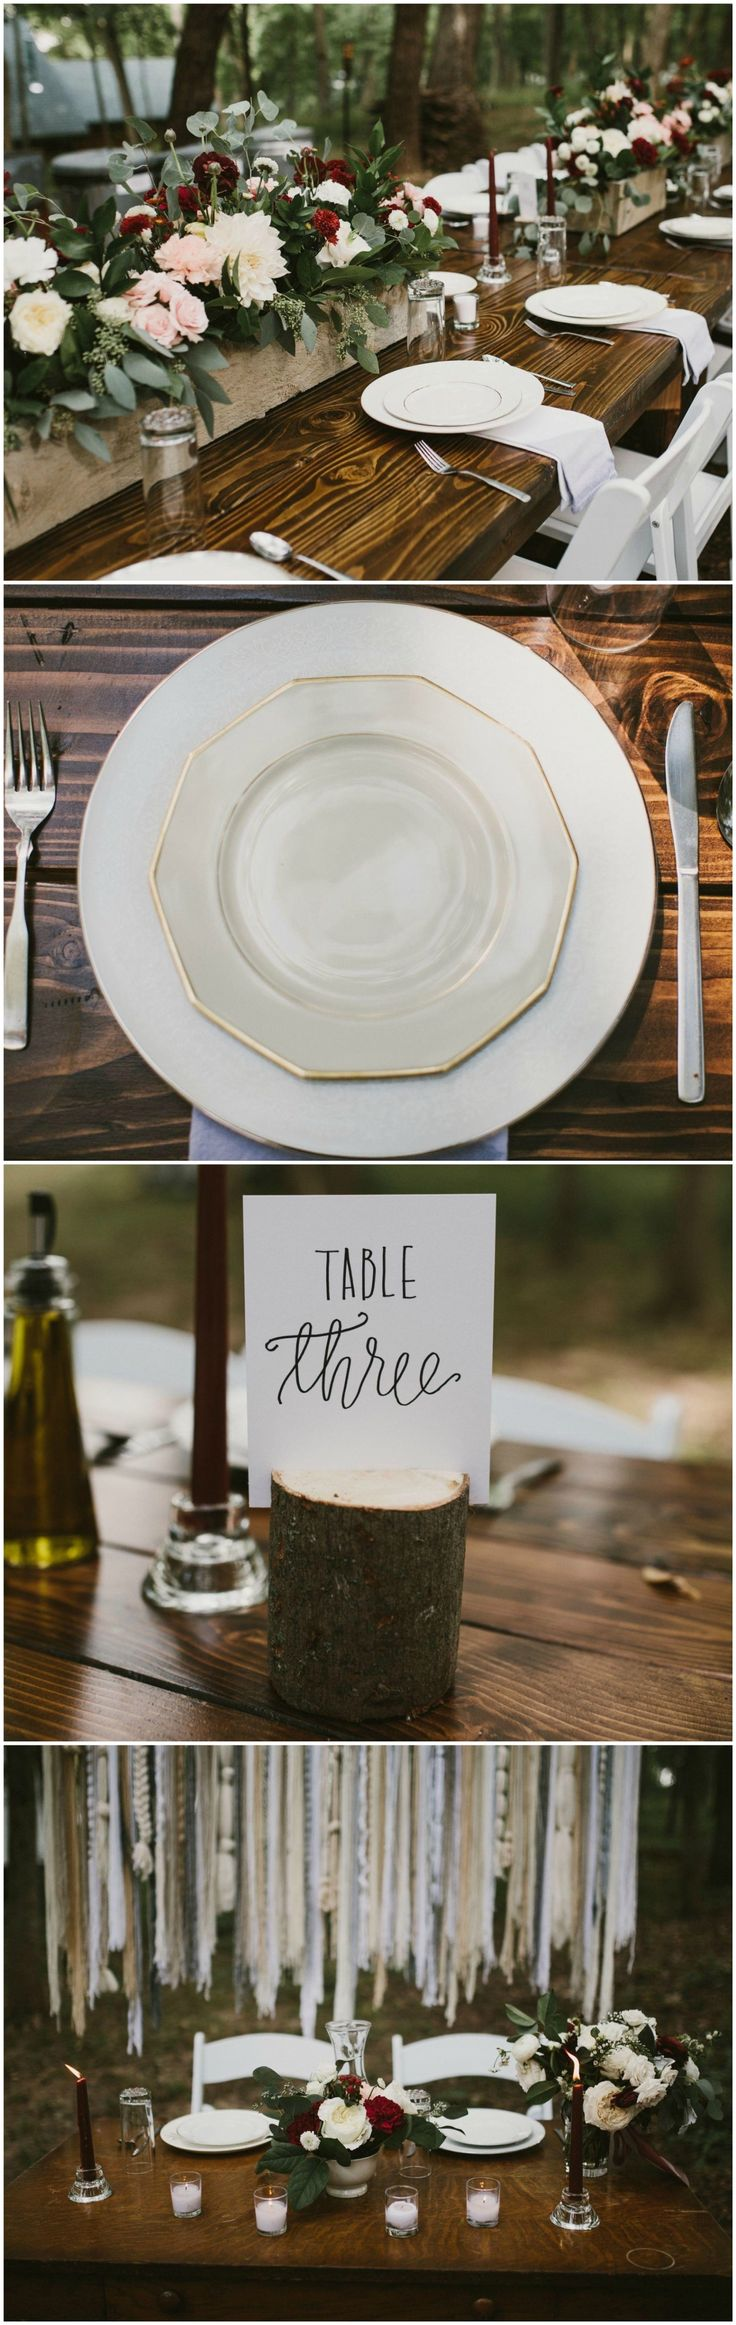 Boho & rustic, outdoor wedding, woods, bare farm table, sweetheart table, ribbon wall, gold-rimmed plate, tree trunk table number, burgundy candlesticks // Aaron & Whitney Photography